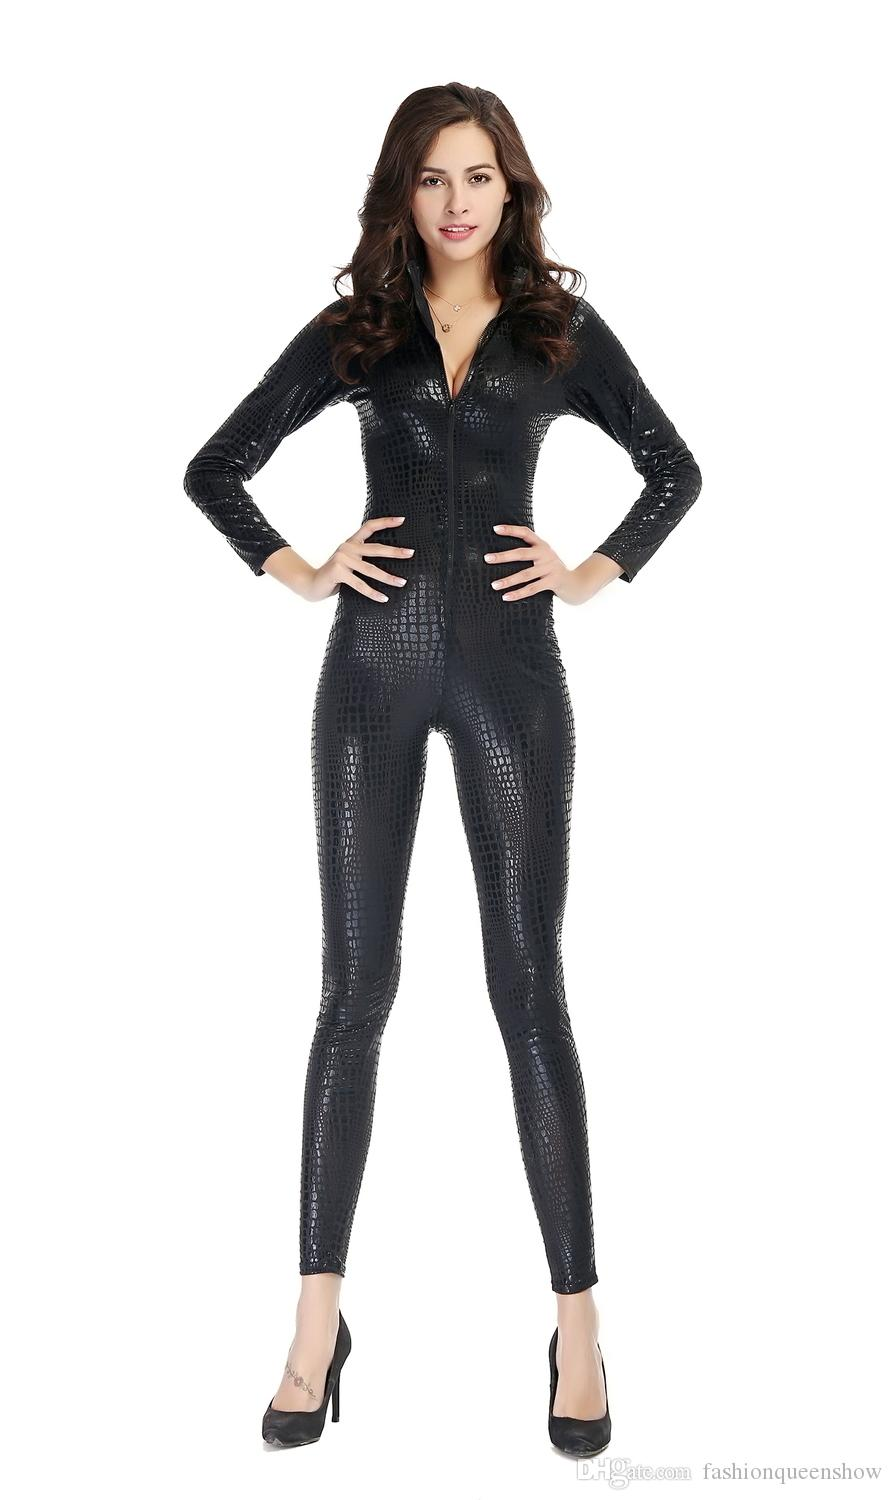 656422bdc7c 2019 New Arrival Fashion Women Hot Sexy Snake Skin Jumpsuit Faux Leather  Catsuit Zipper Front Bodycon Overall Fetish Costume From Fashionqueenshow